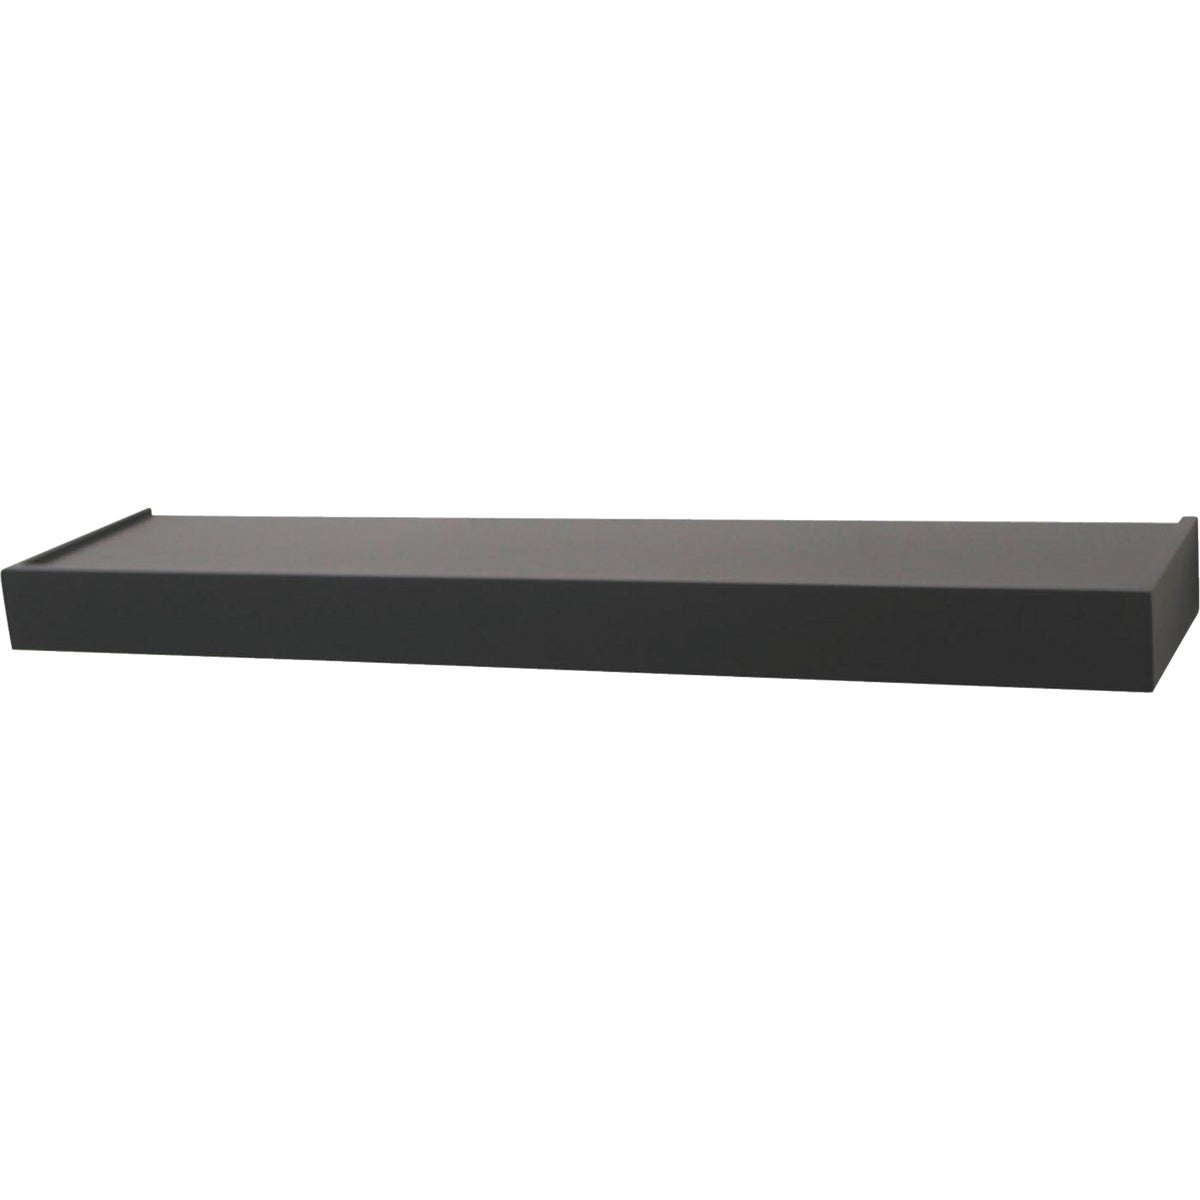 "36"" BLACK FLOATING SHELF"